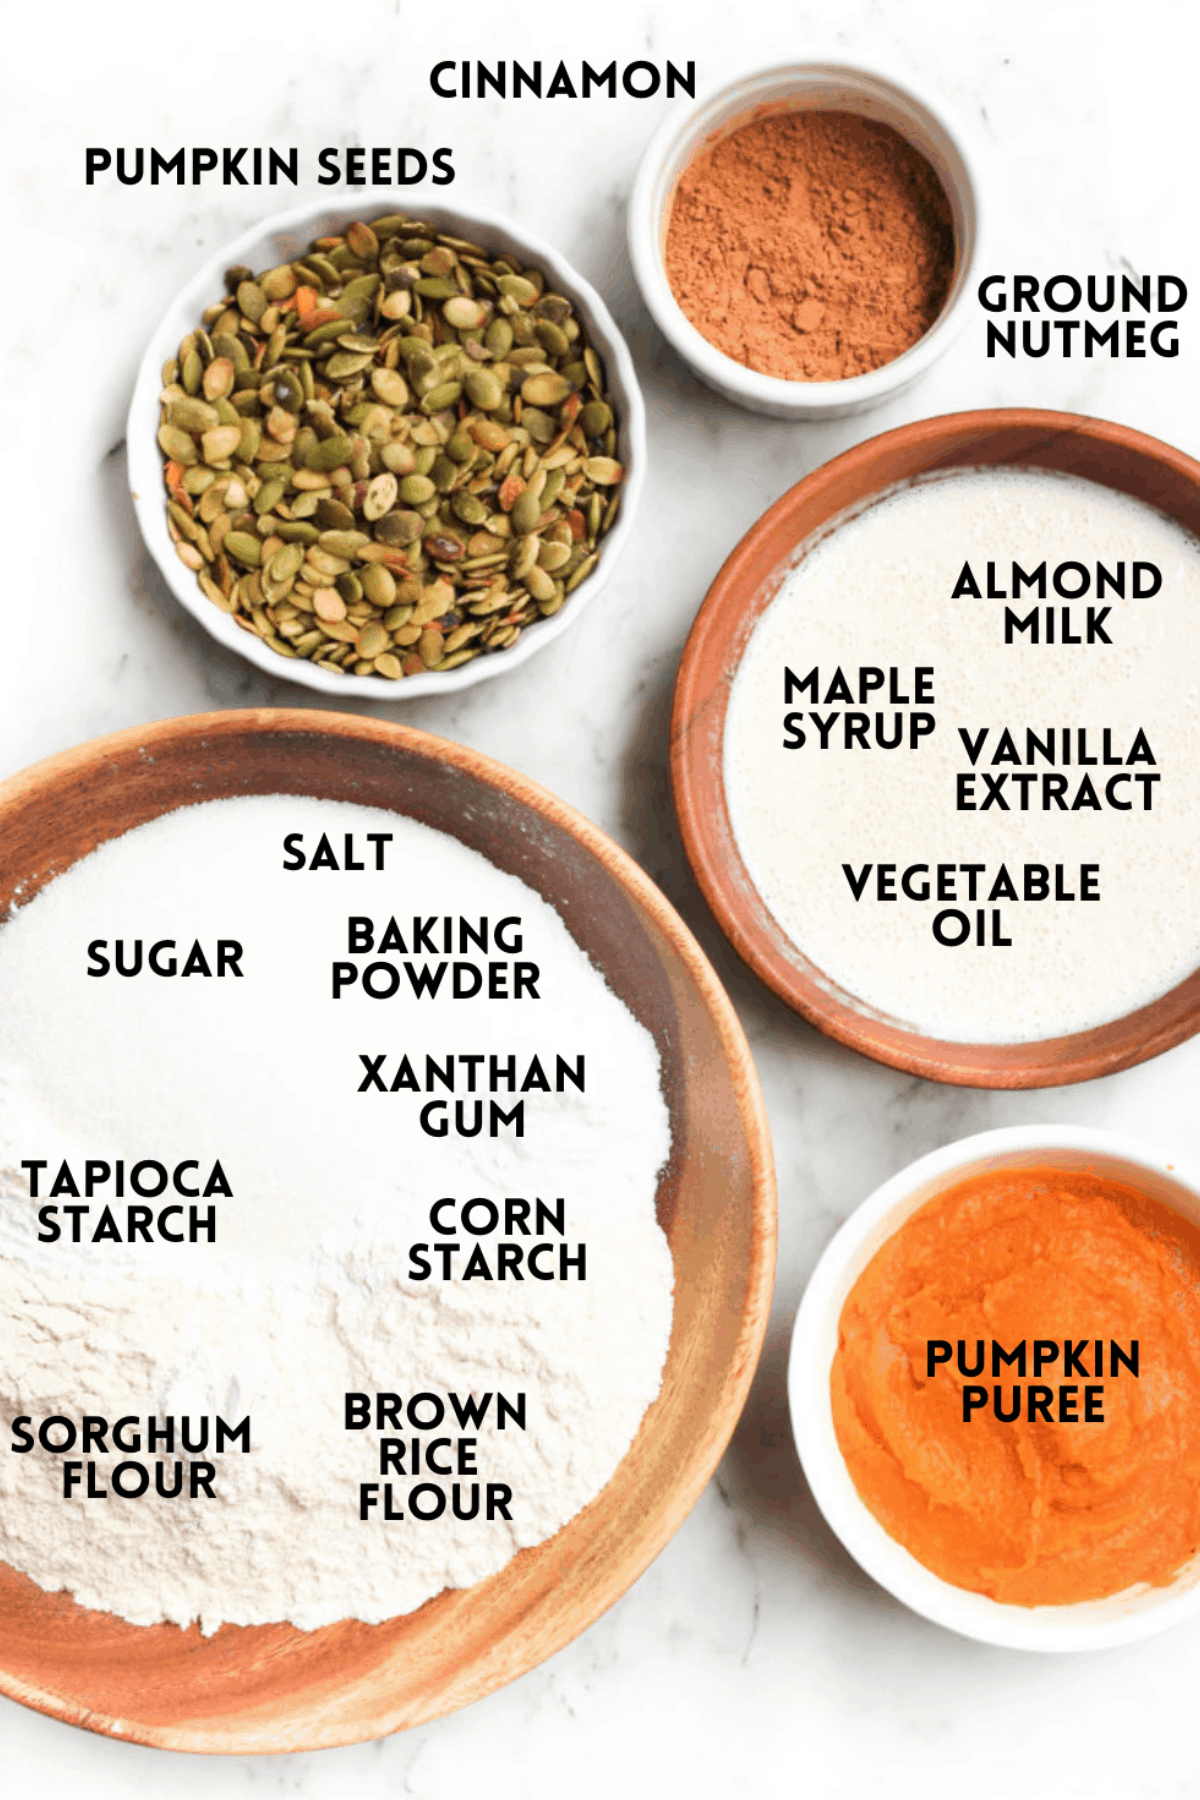 Ingredients for pumpkin bread laid out on a marble board and labeled with text.